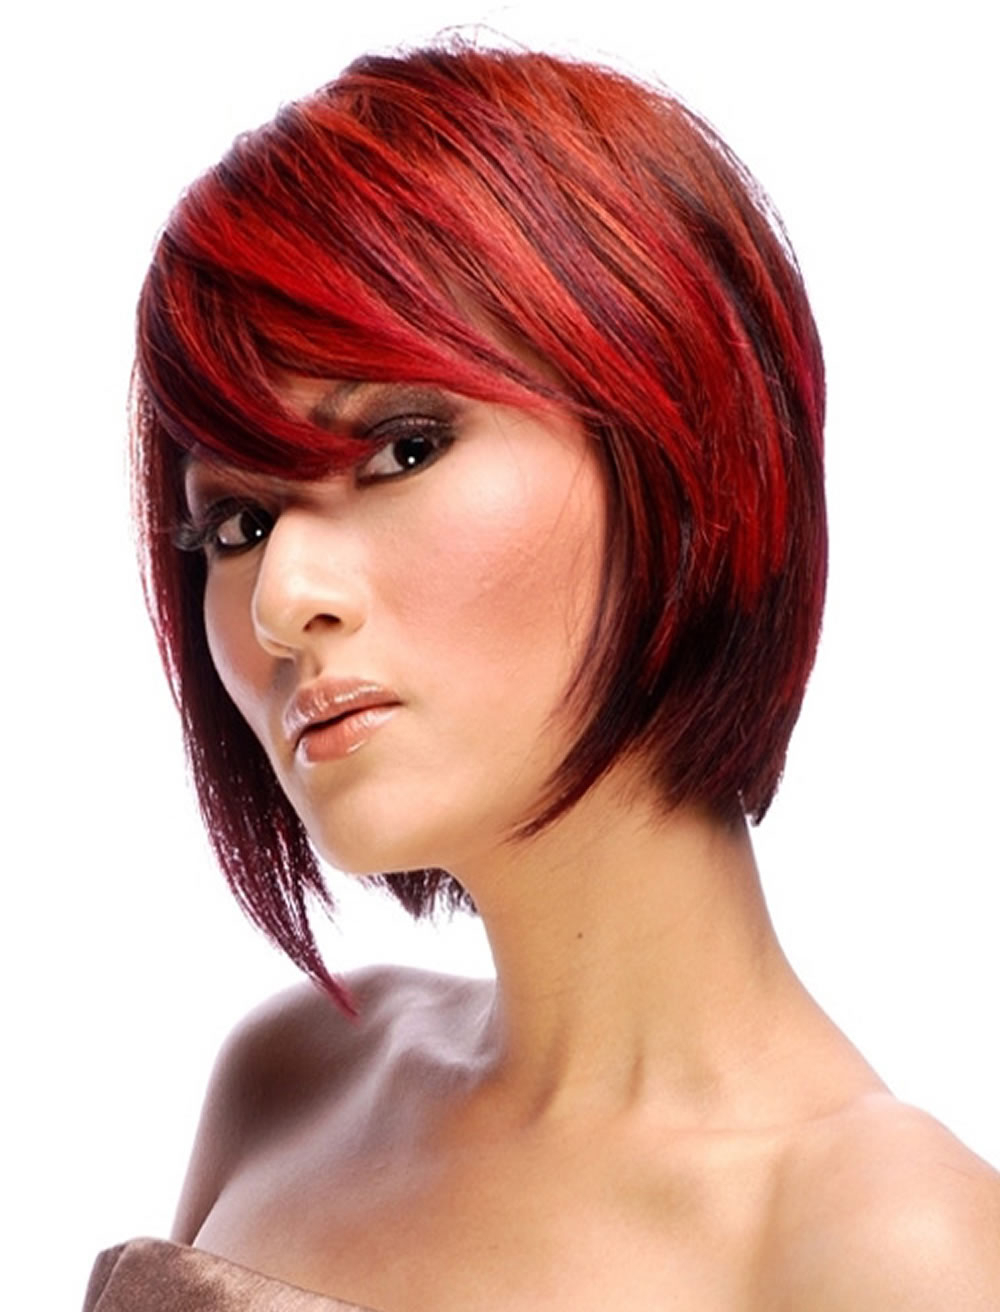 Red Hair Color For Short Hairstyles | 27 Cool Haircut Tutorial For Inside Short Hairstyles For Red Hair (View 17 of 25)